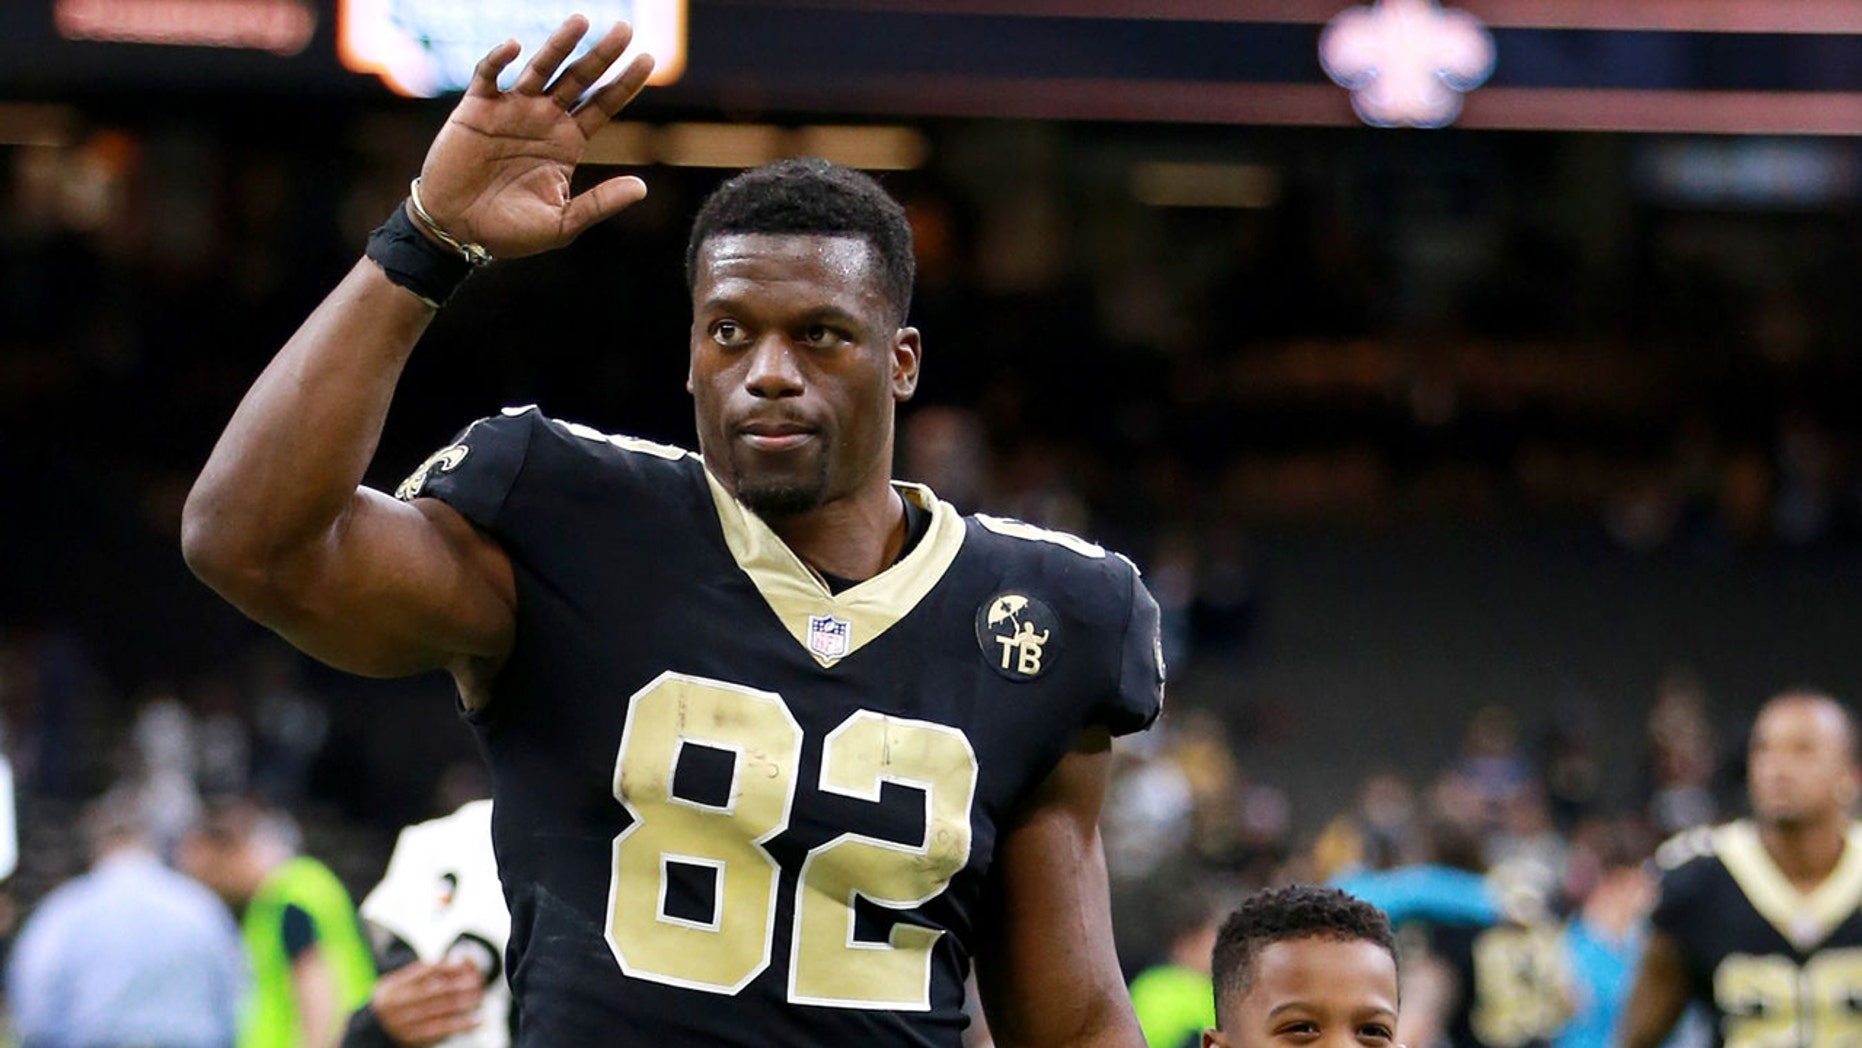 Benjamin Watson, #82 of a New Orleans Saints, walks off a margin with his son after NFL diversion opposite a Carolina Panthers during a Mercedes-Benz Superdome in New Orleans, Louisiana on Dec 30, 2018. (Photo by Sean Gardner/Getty Images)